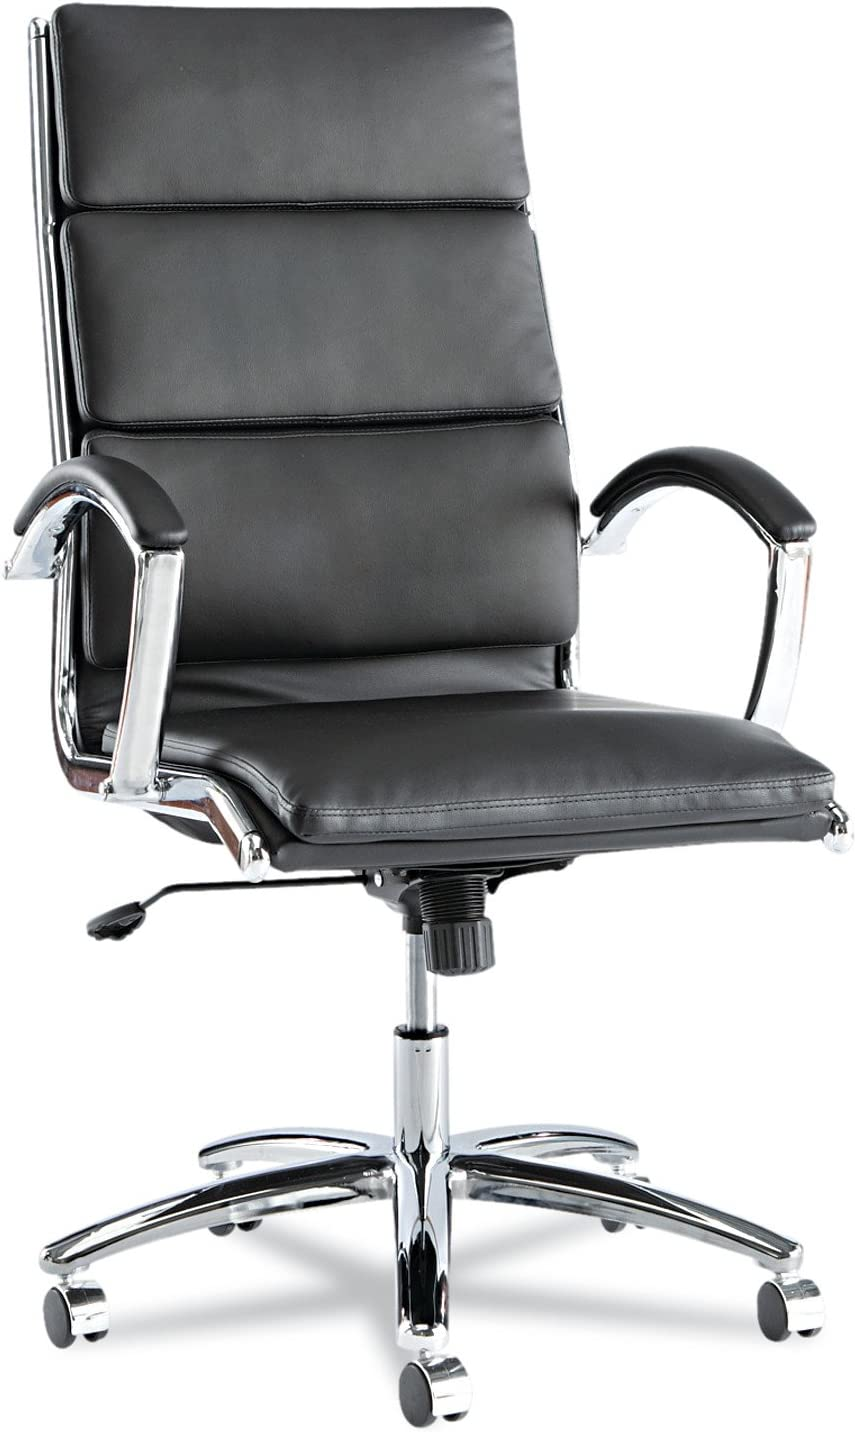 Alera Neratoli High back Swivel Chair review